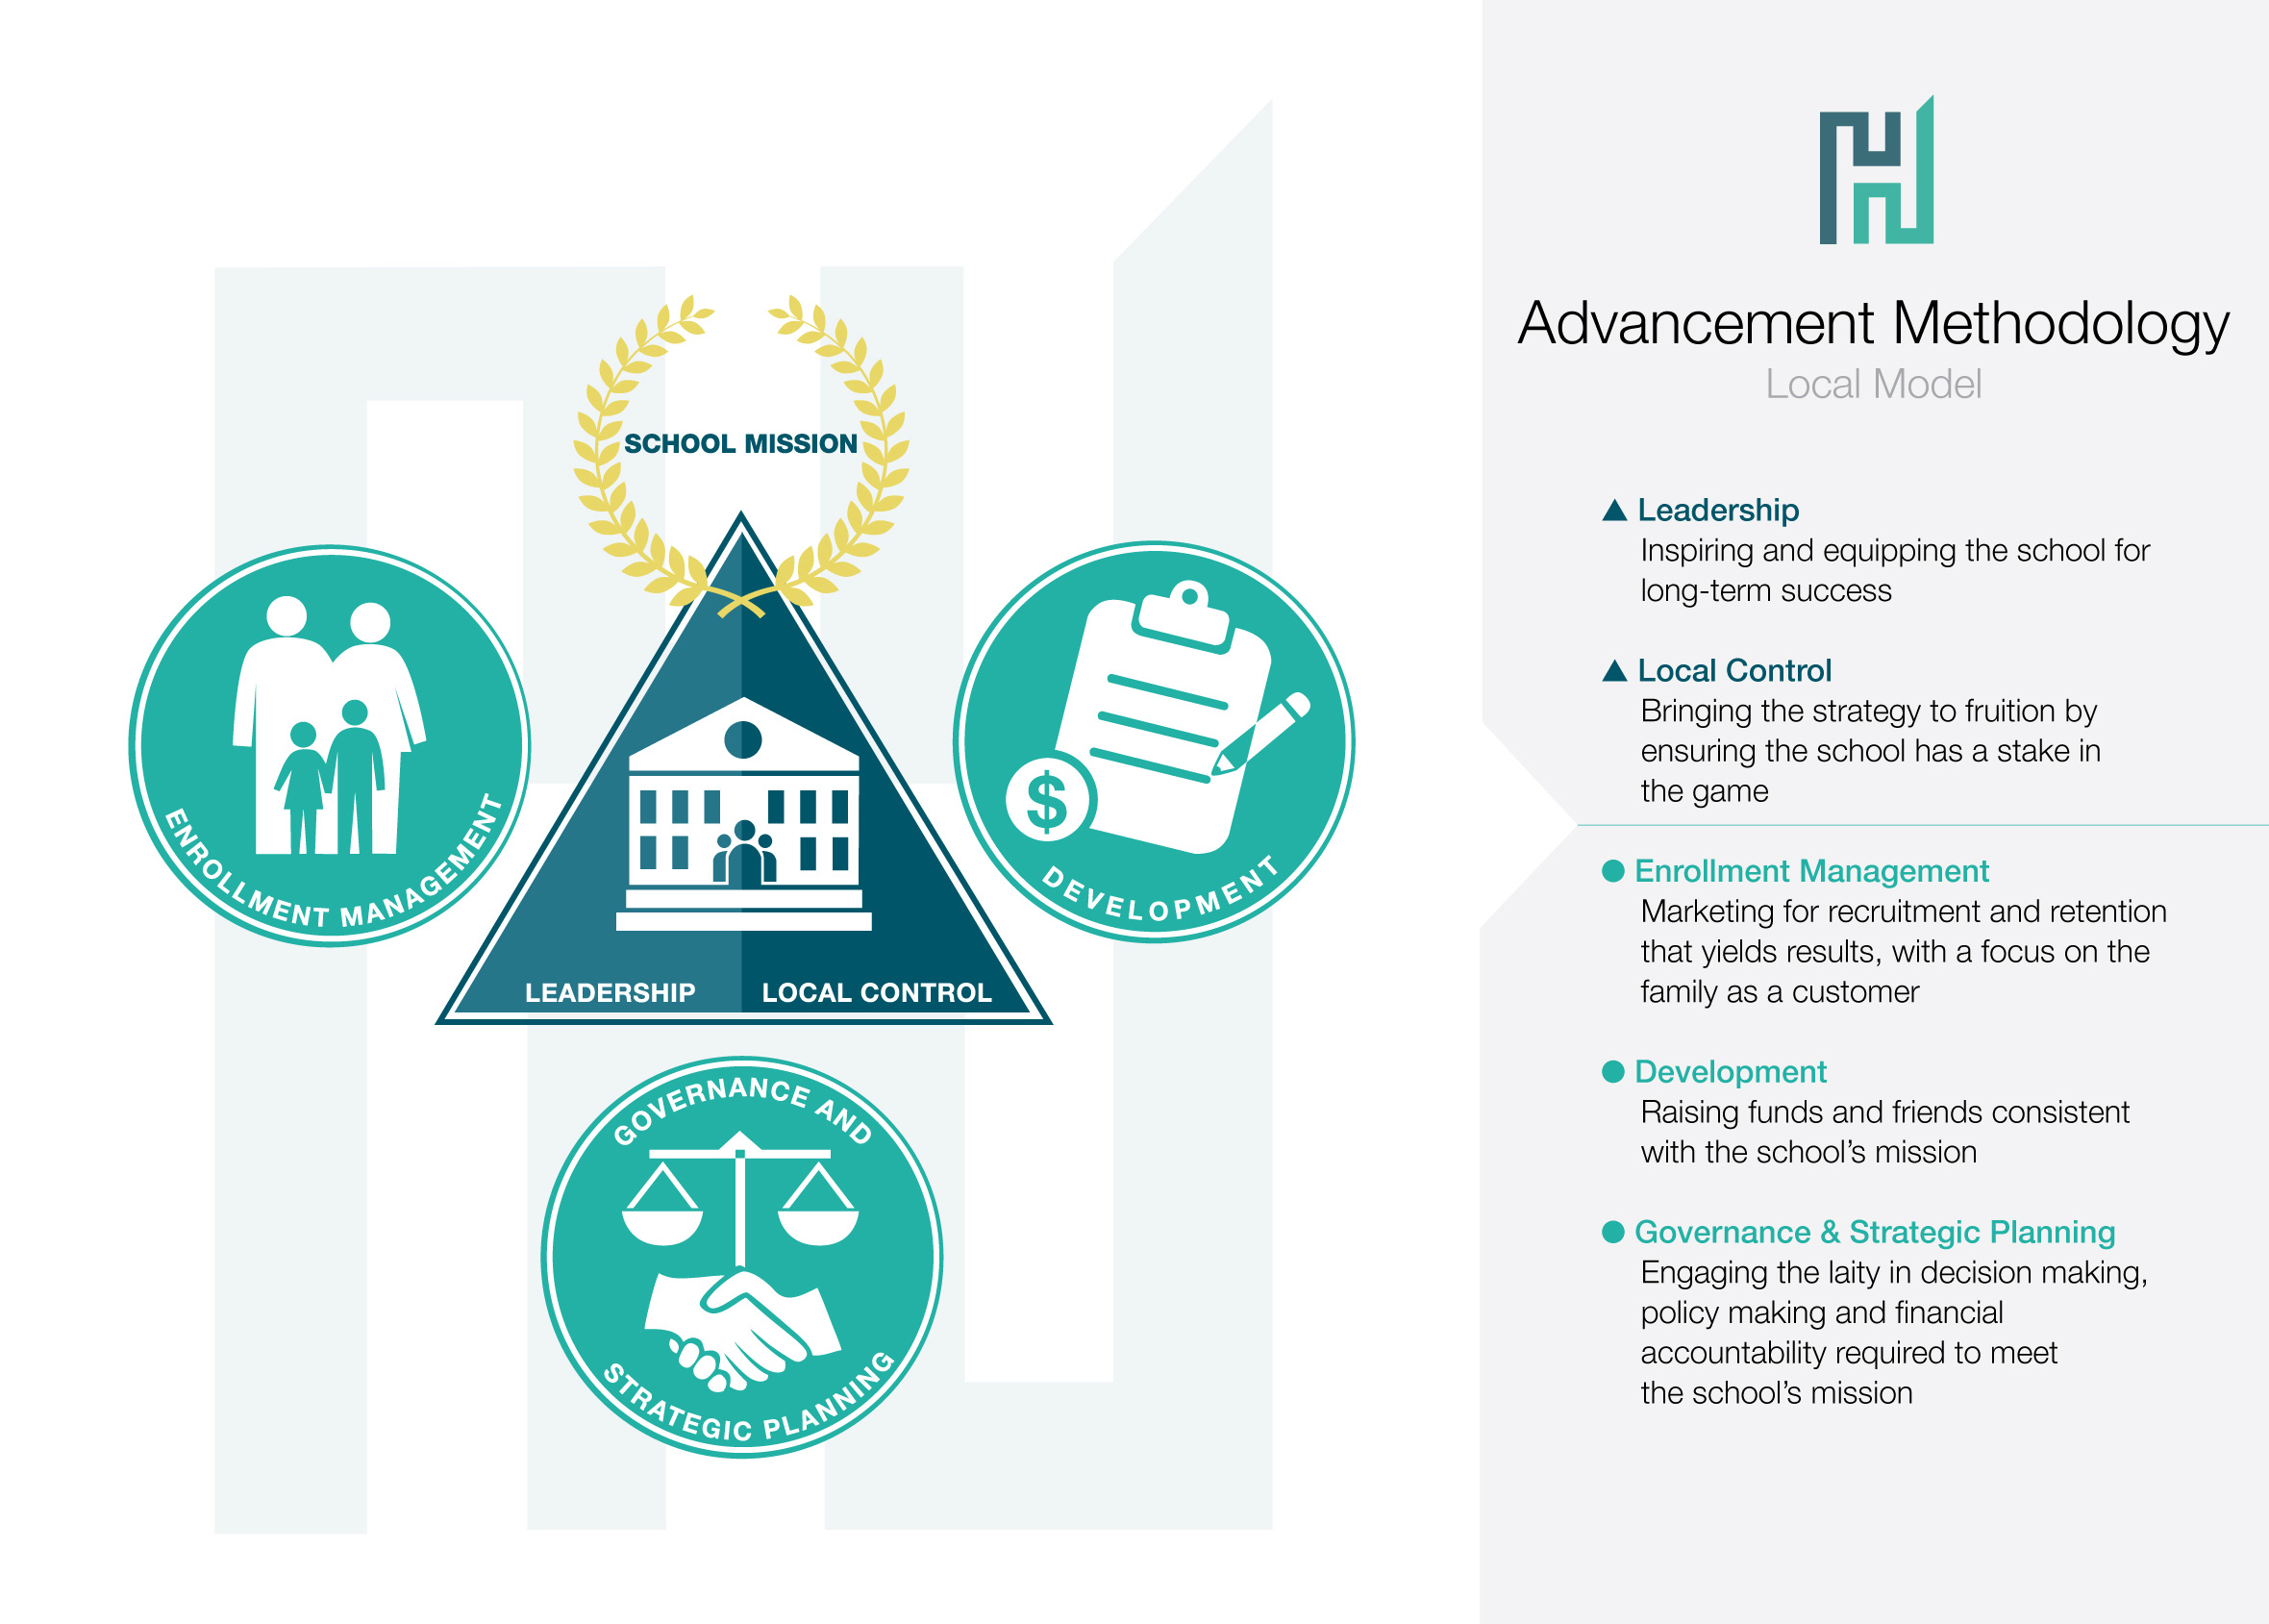 Healey Advancement Methodology